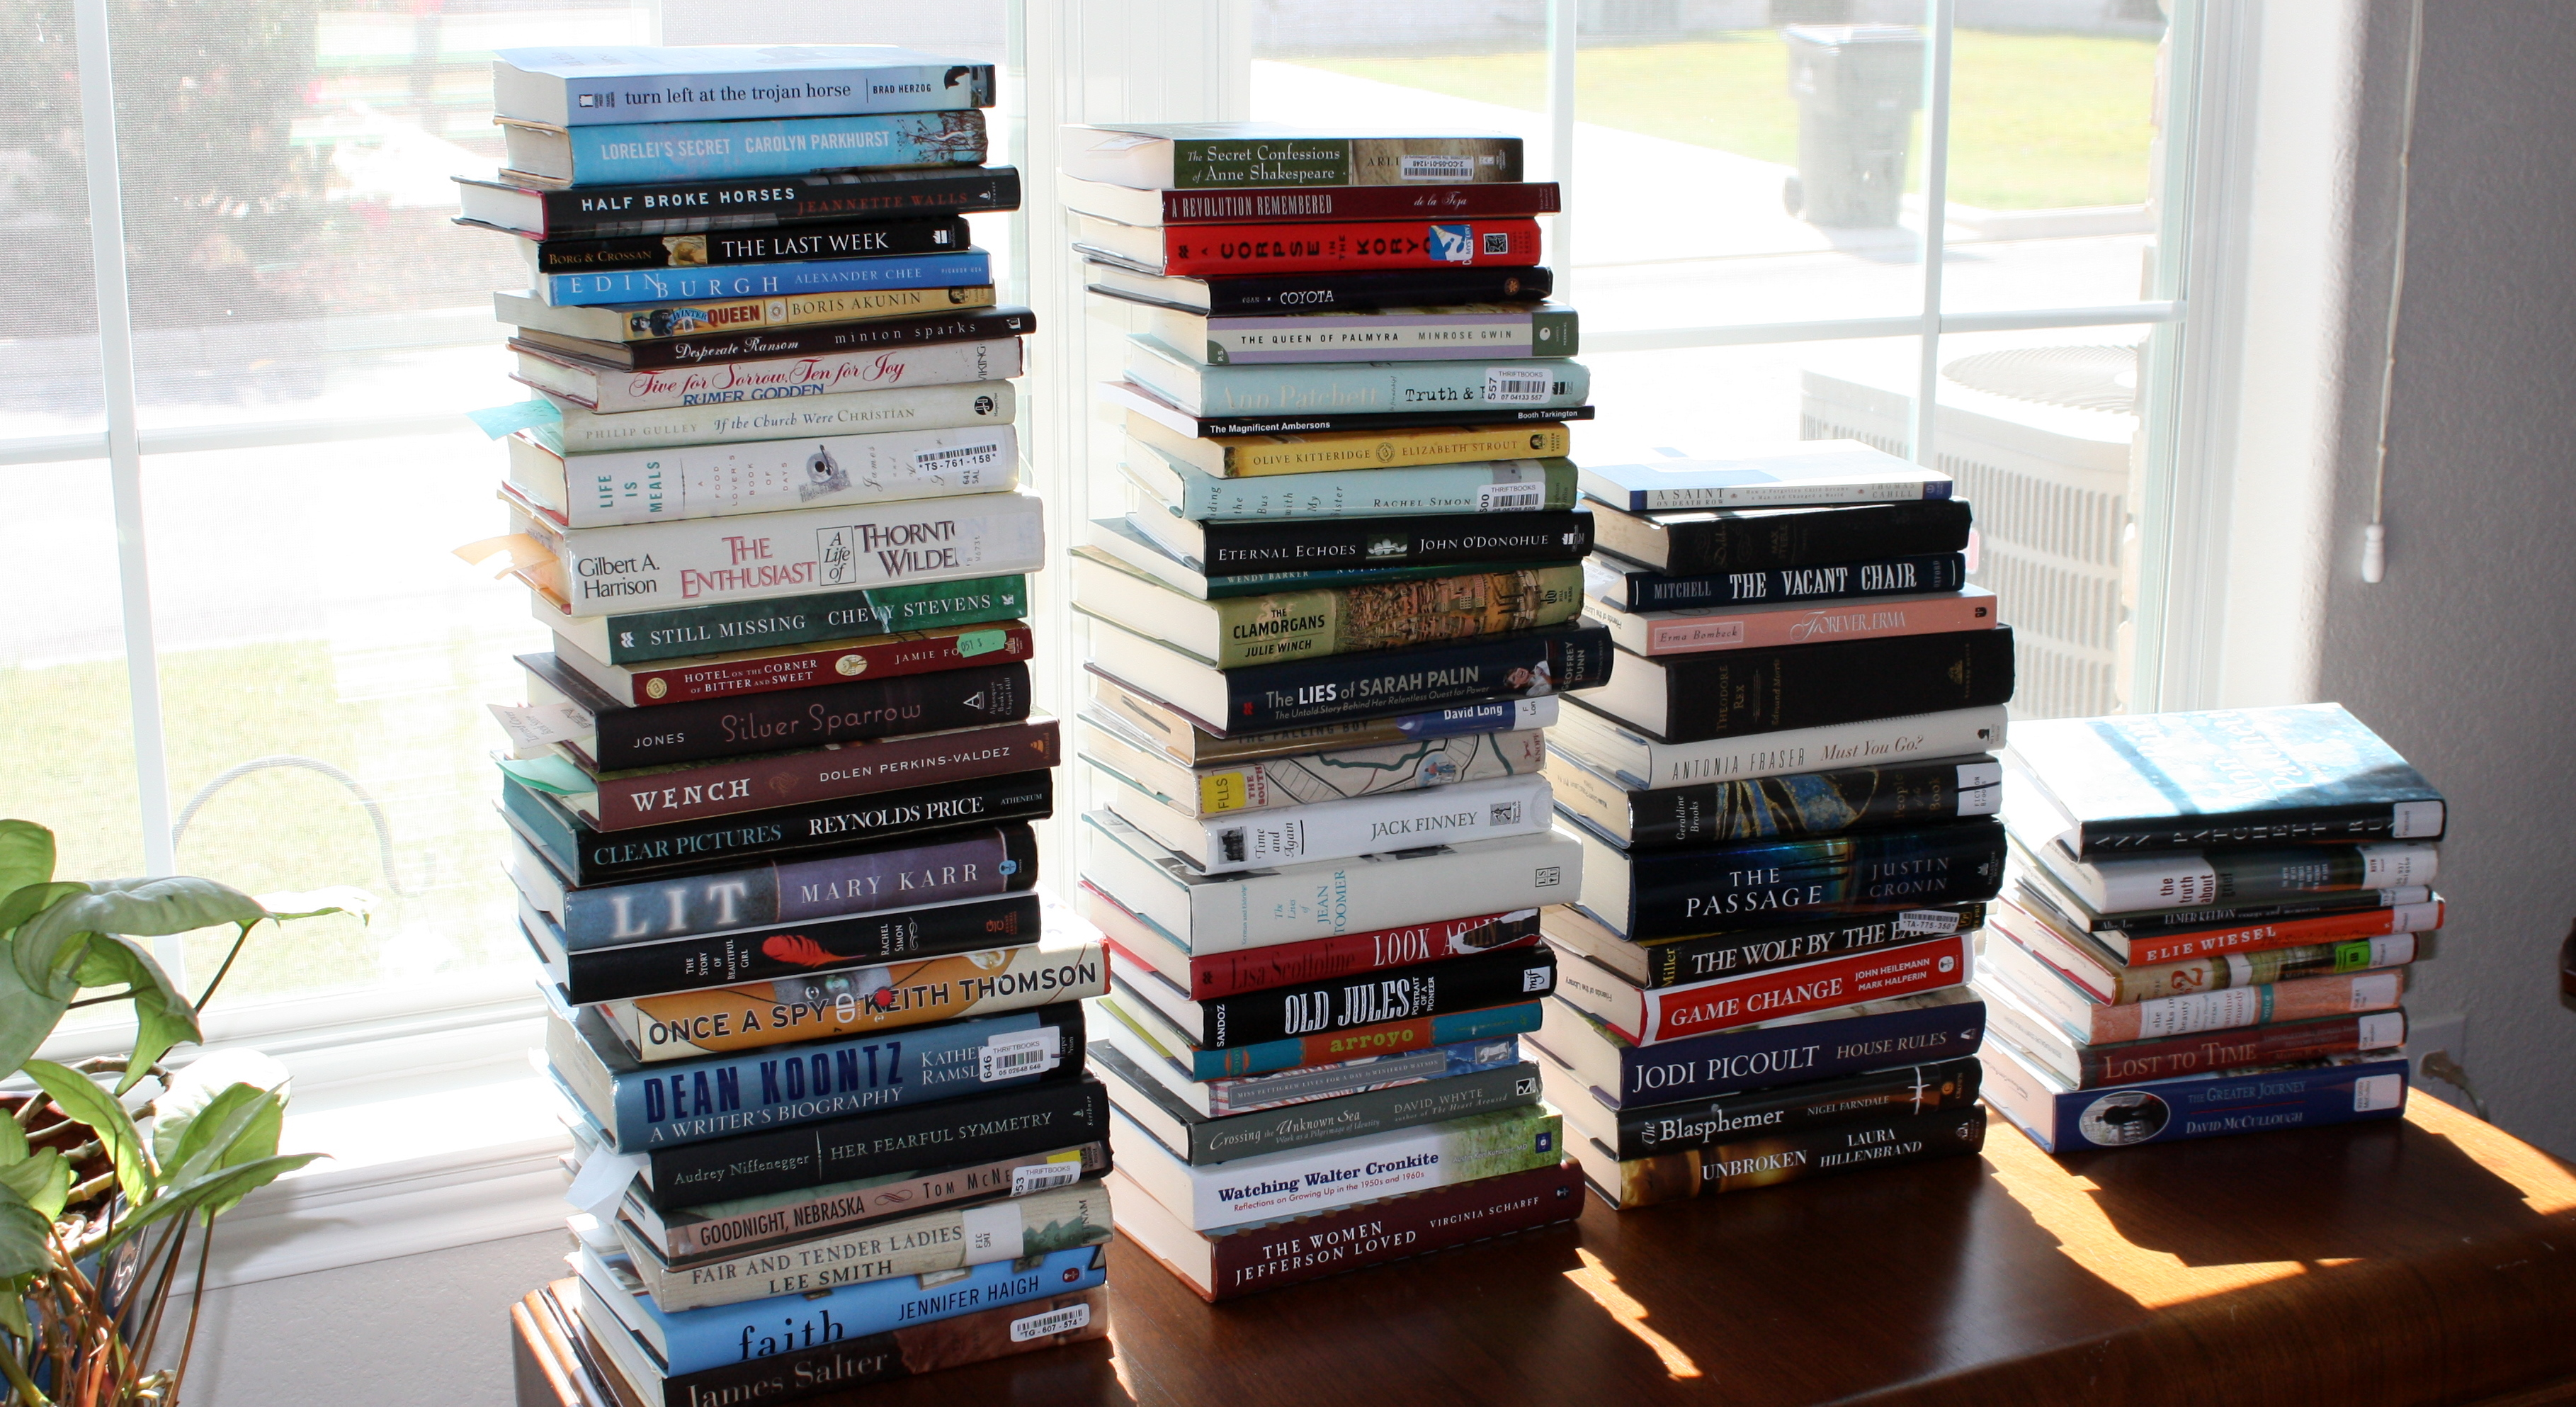 books stacked stacks stack place aimless purpose